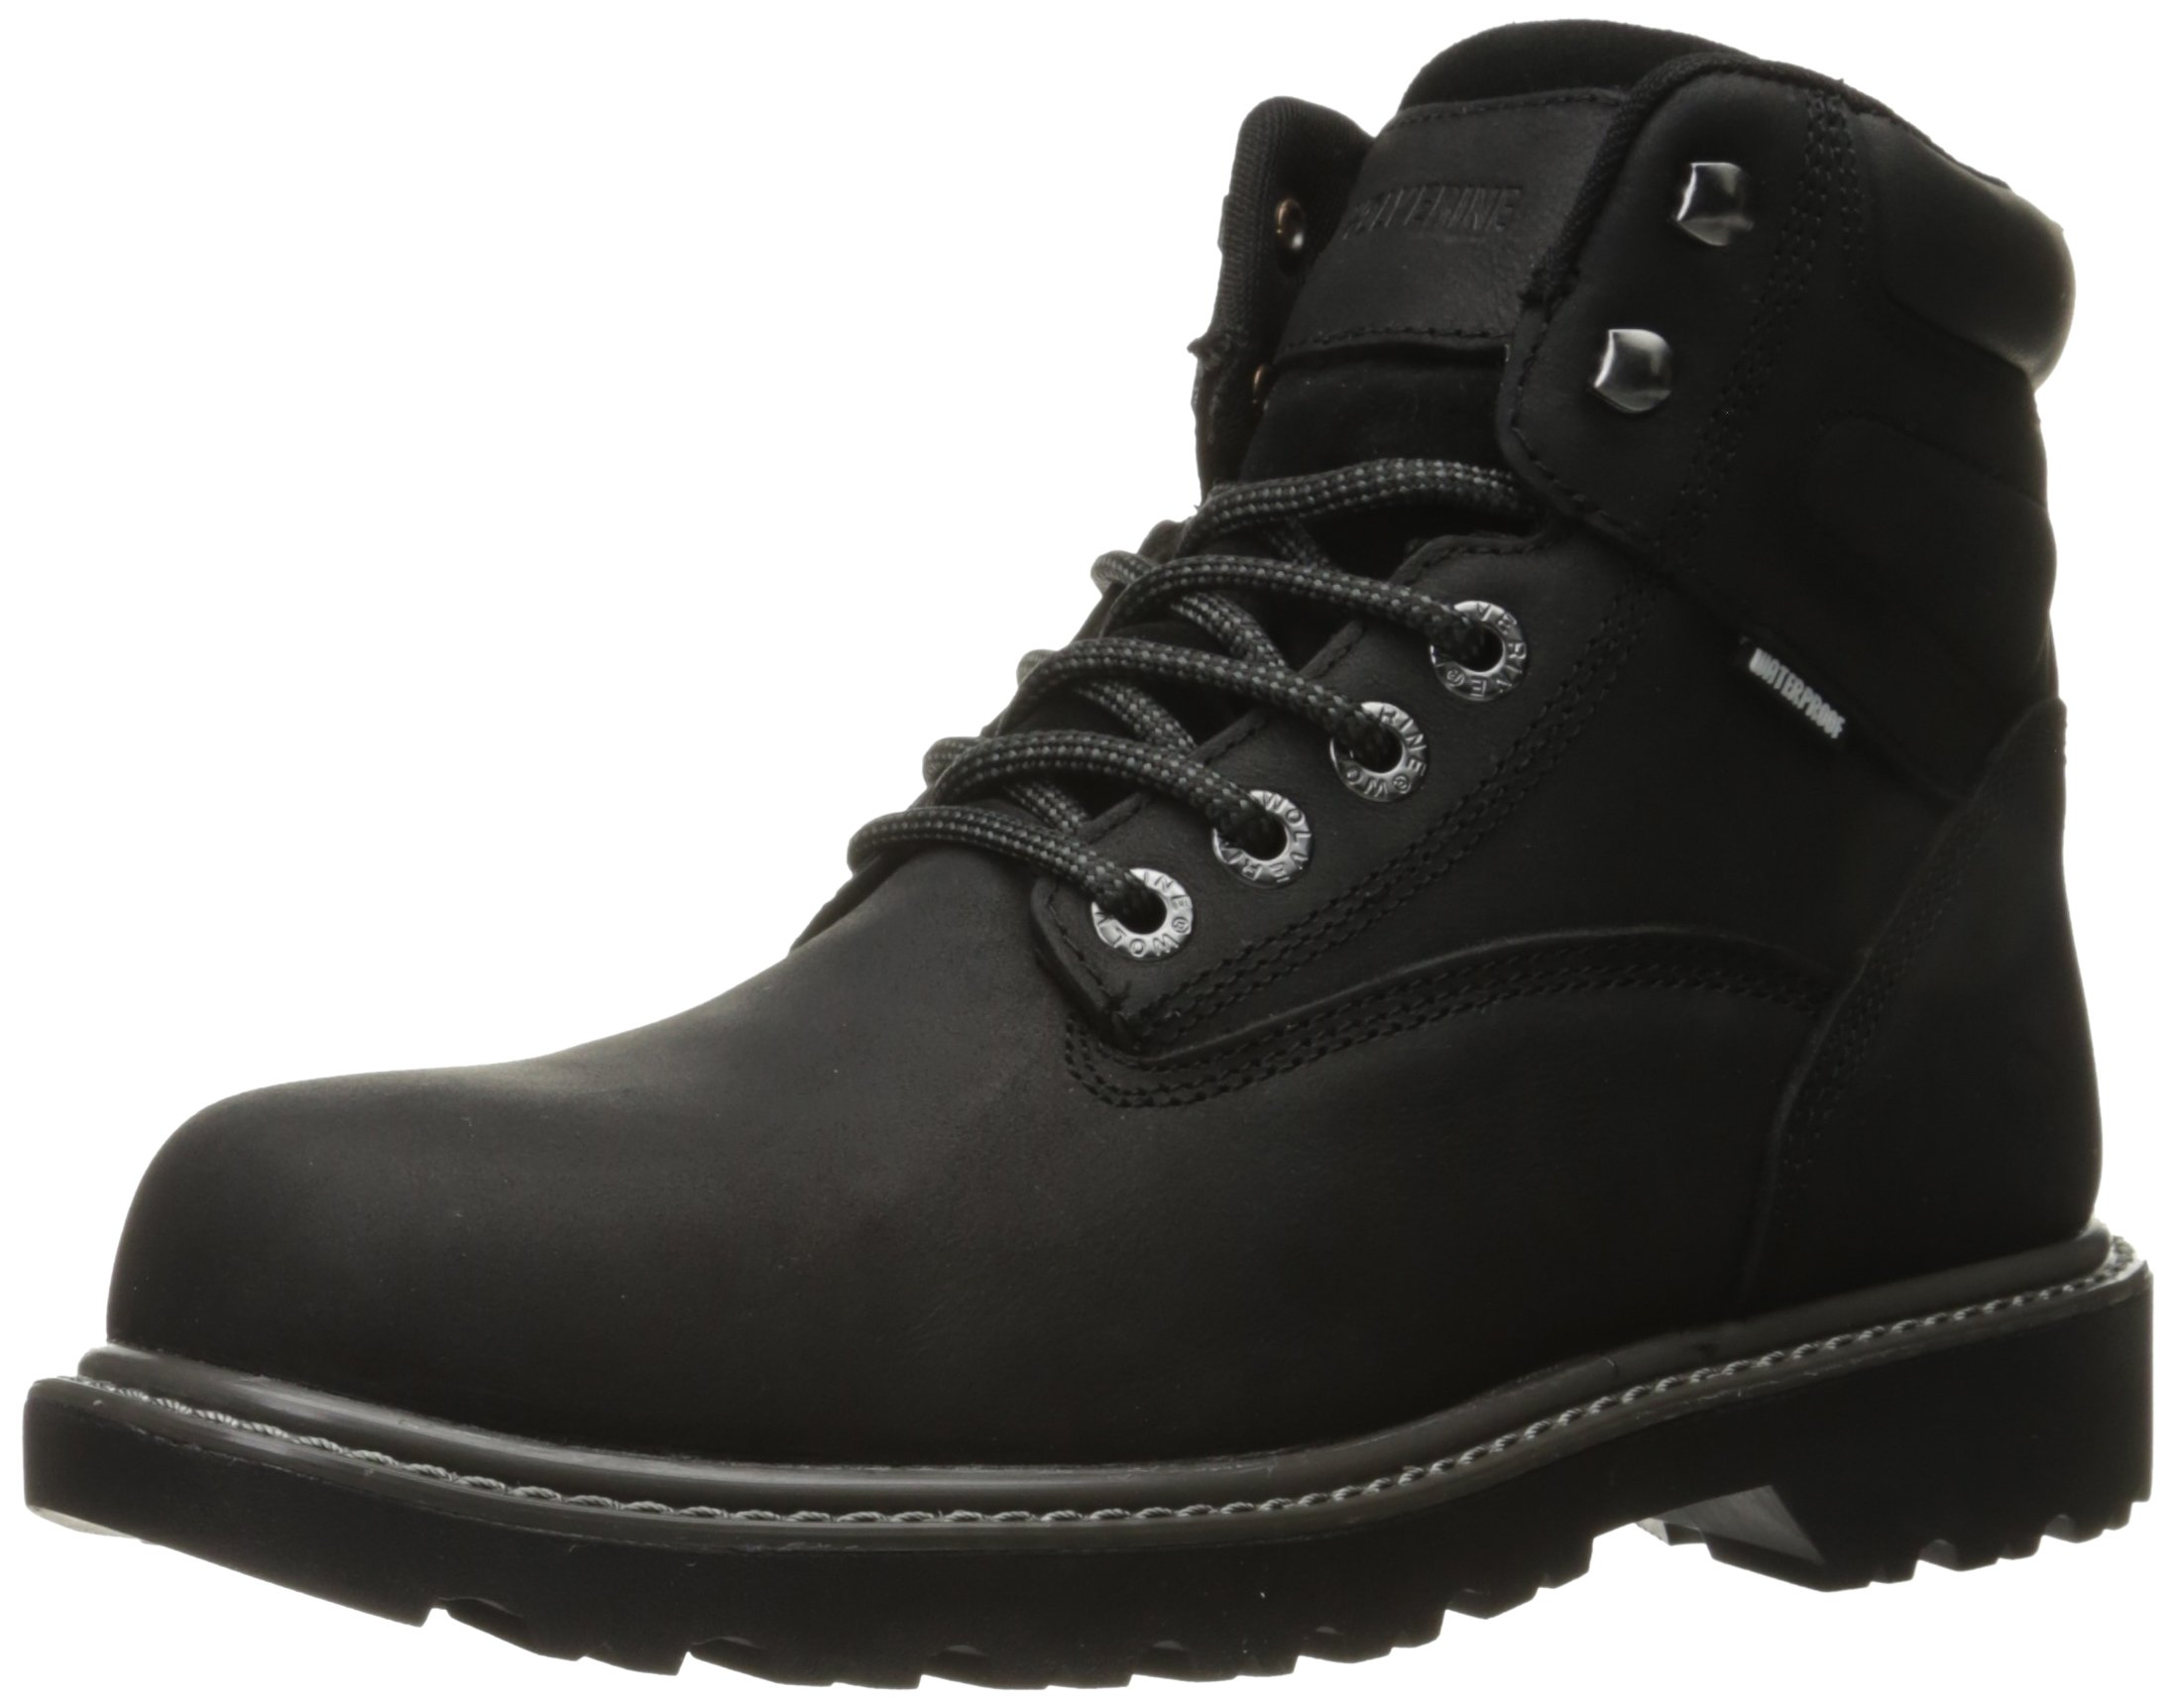 Wolverine Men's Floorhand Waterproof 6'' Steel Toe Work Boot, Black, 10.5 M US